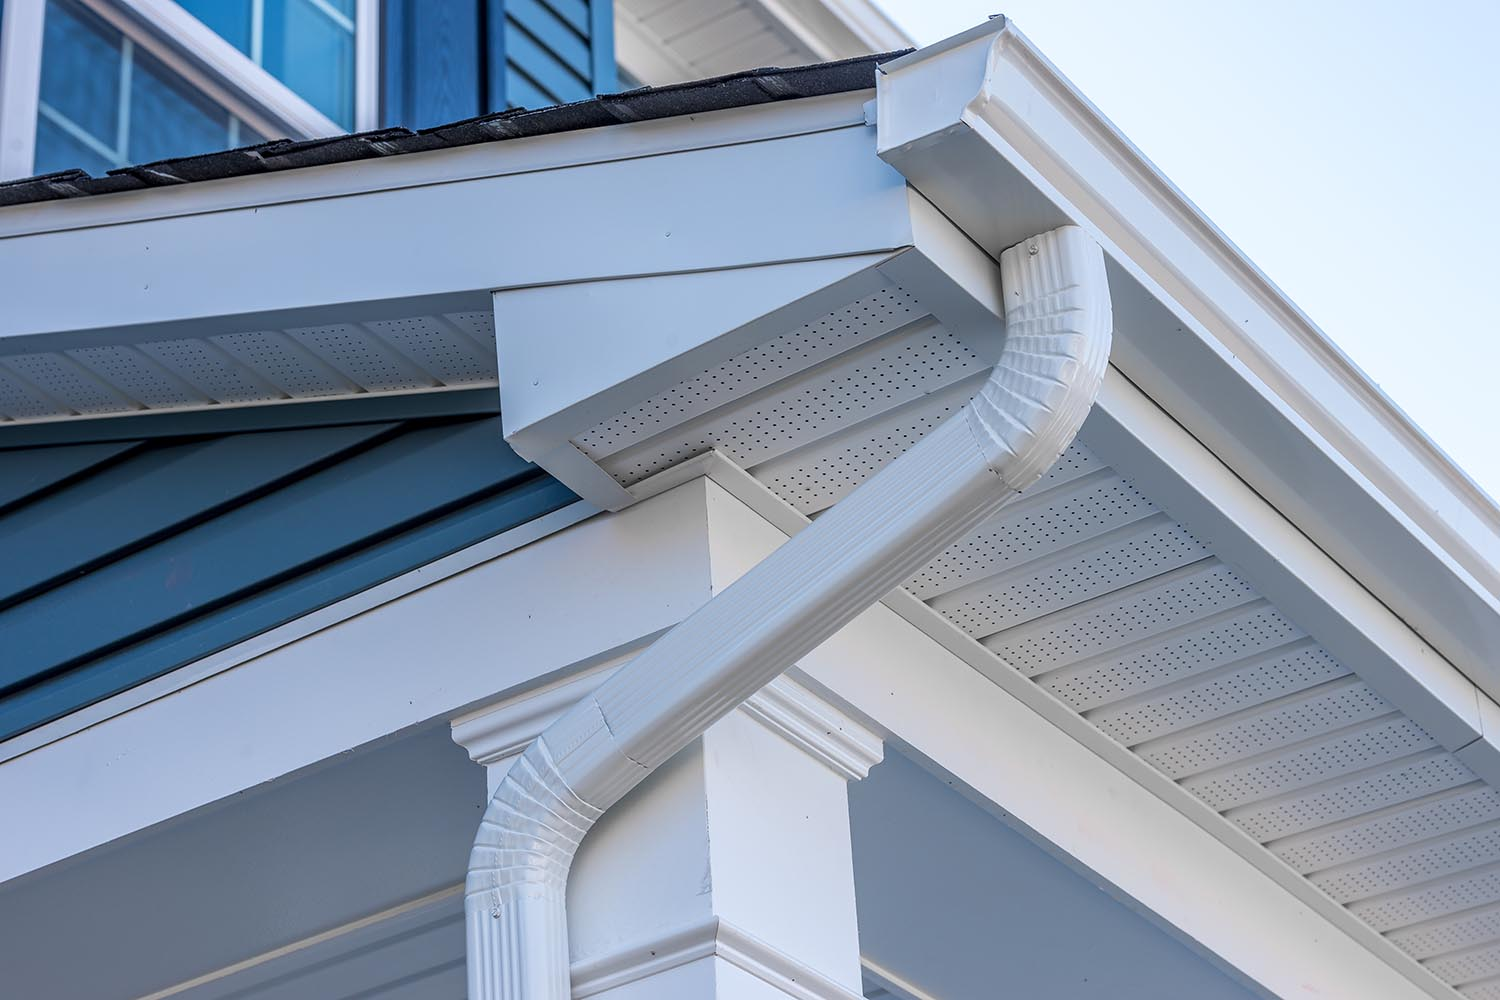 EC roofing can install new gutters